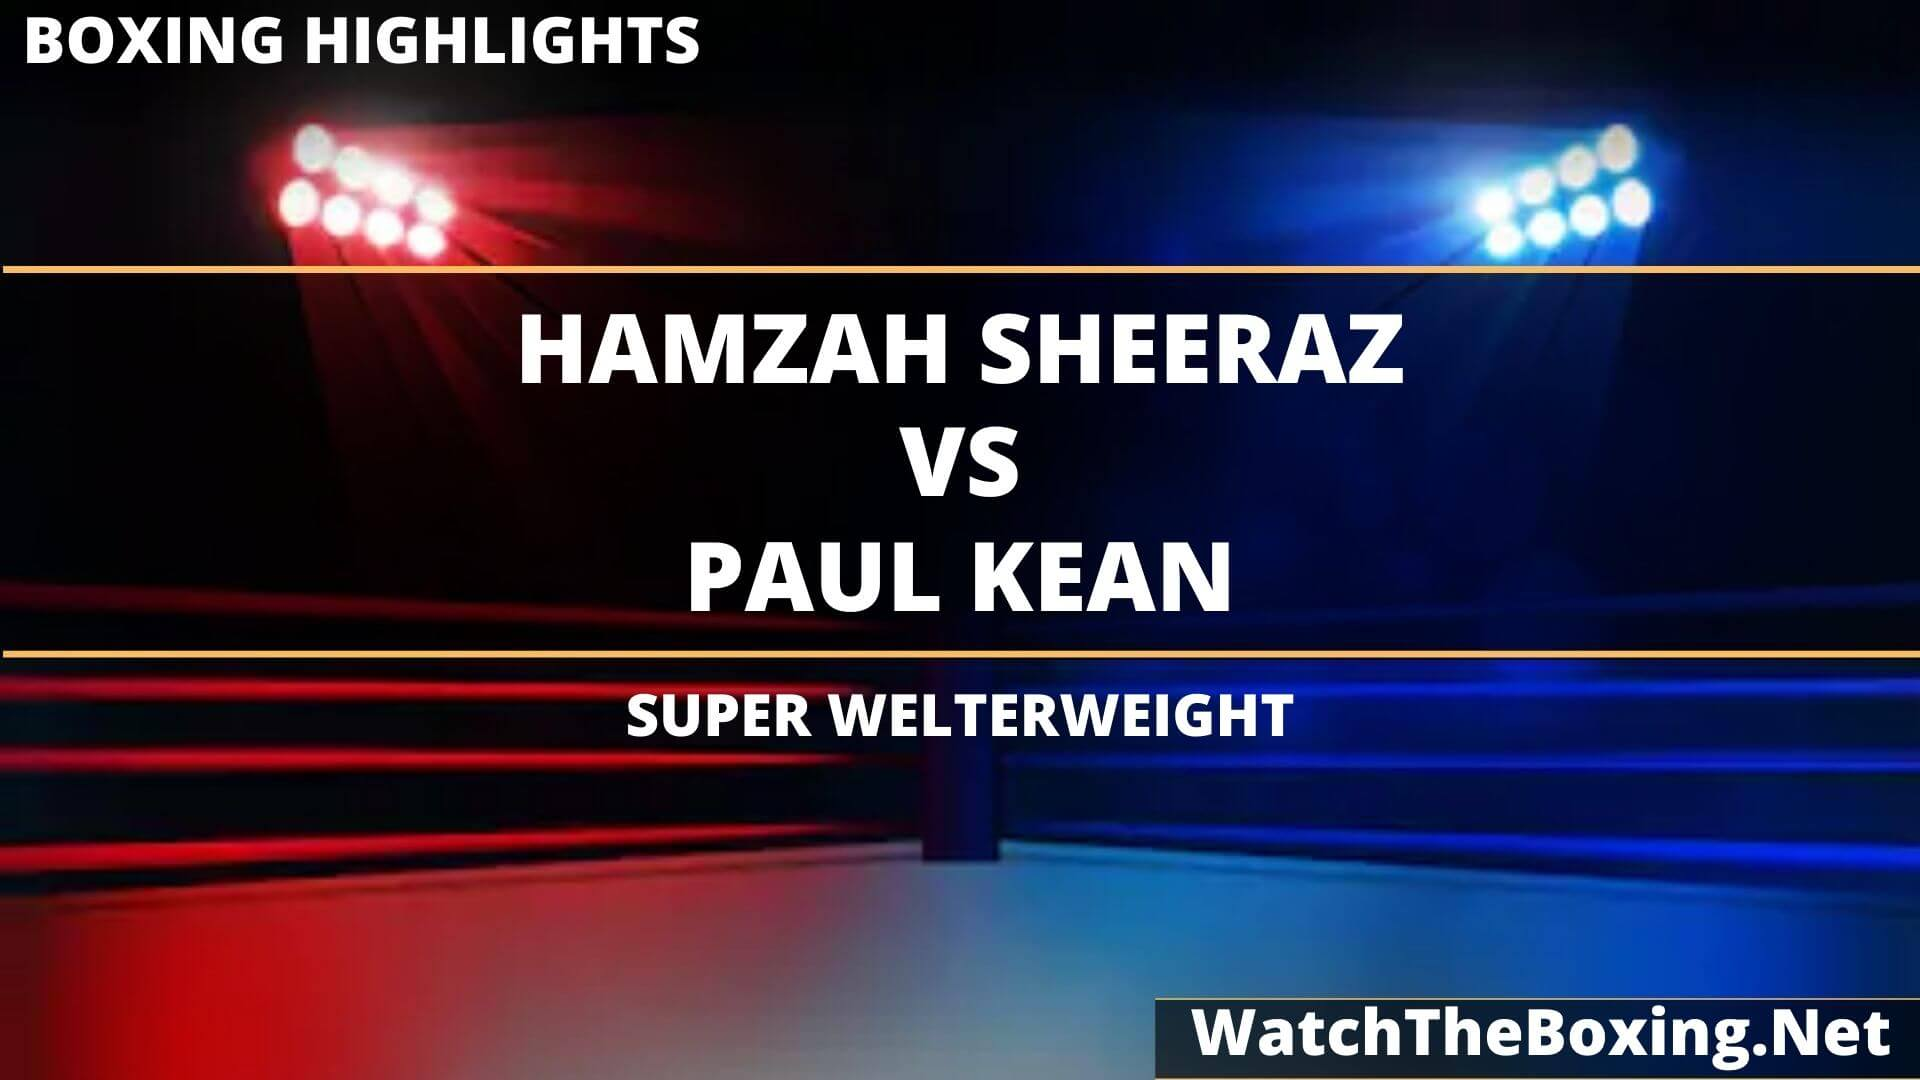 Hamzah Sheeraz Vs Paul Kean Highlights 2020 Super Welterweight